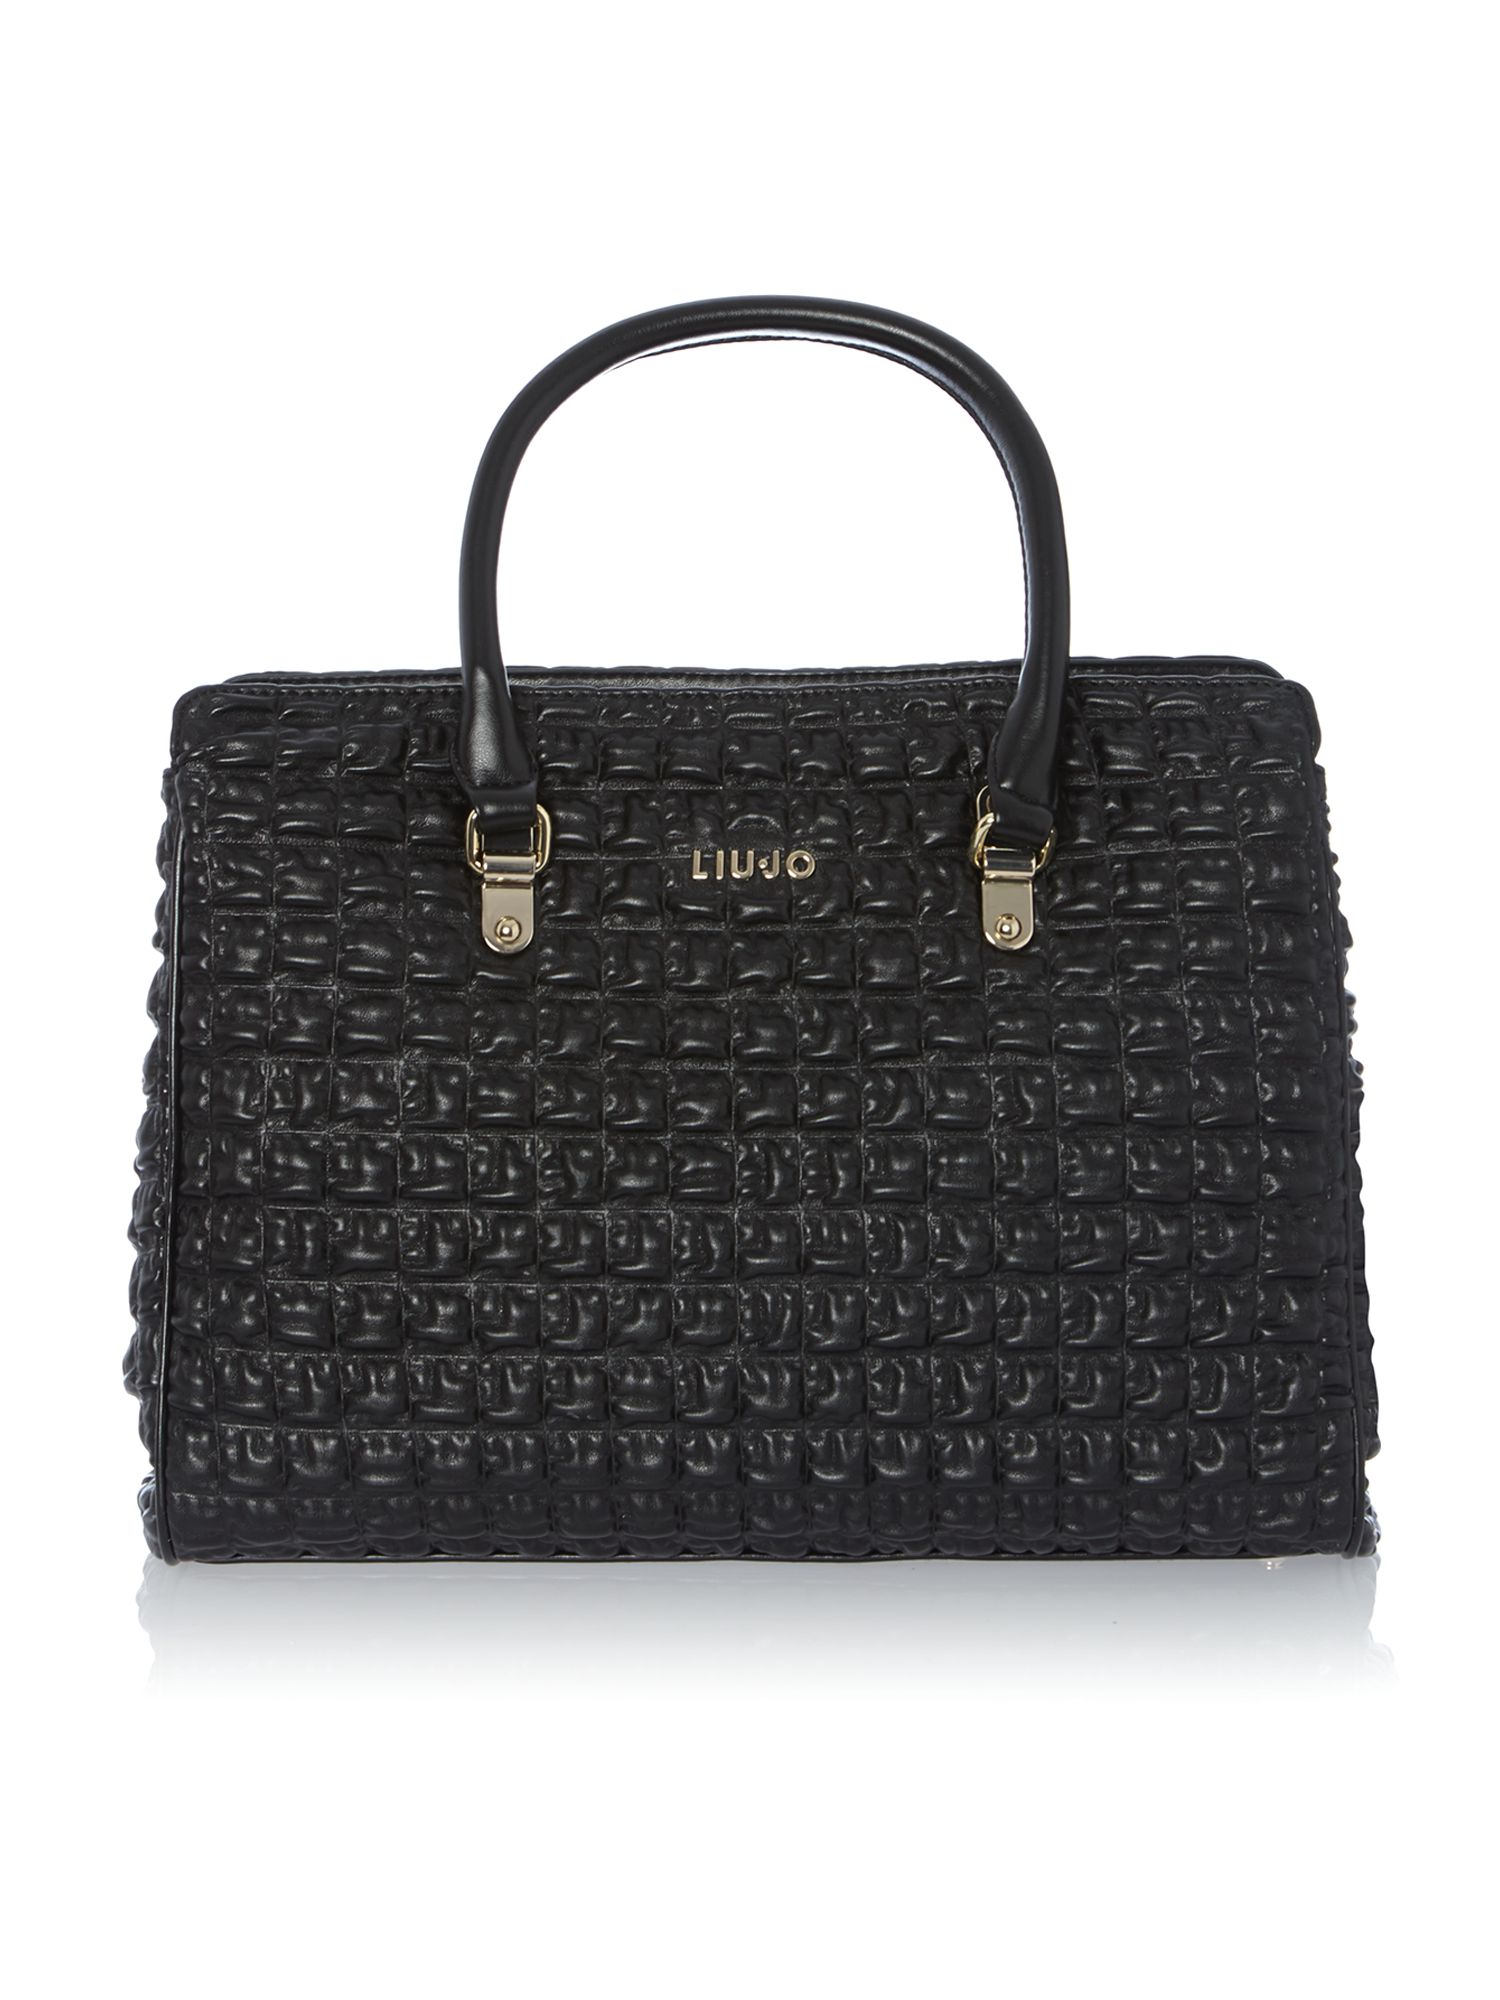 Juliette black quilt tote bag